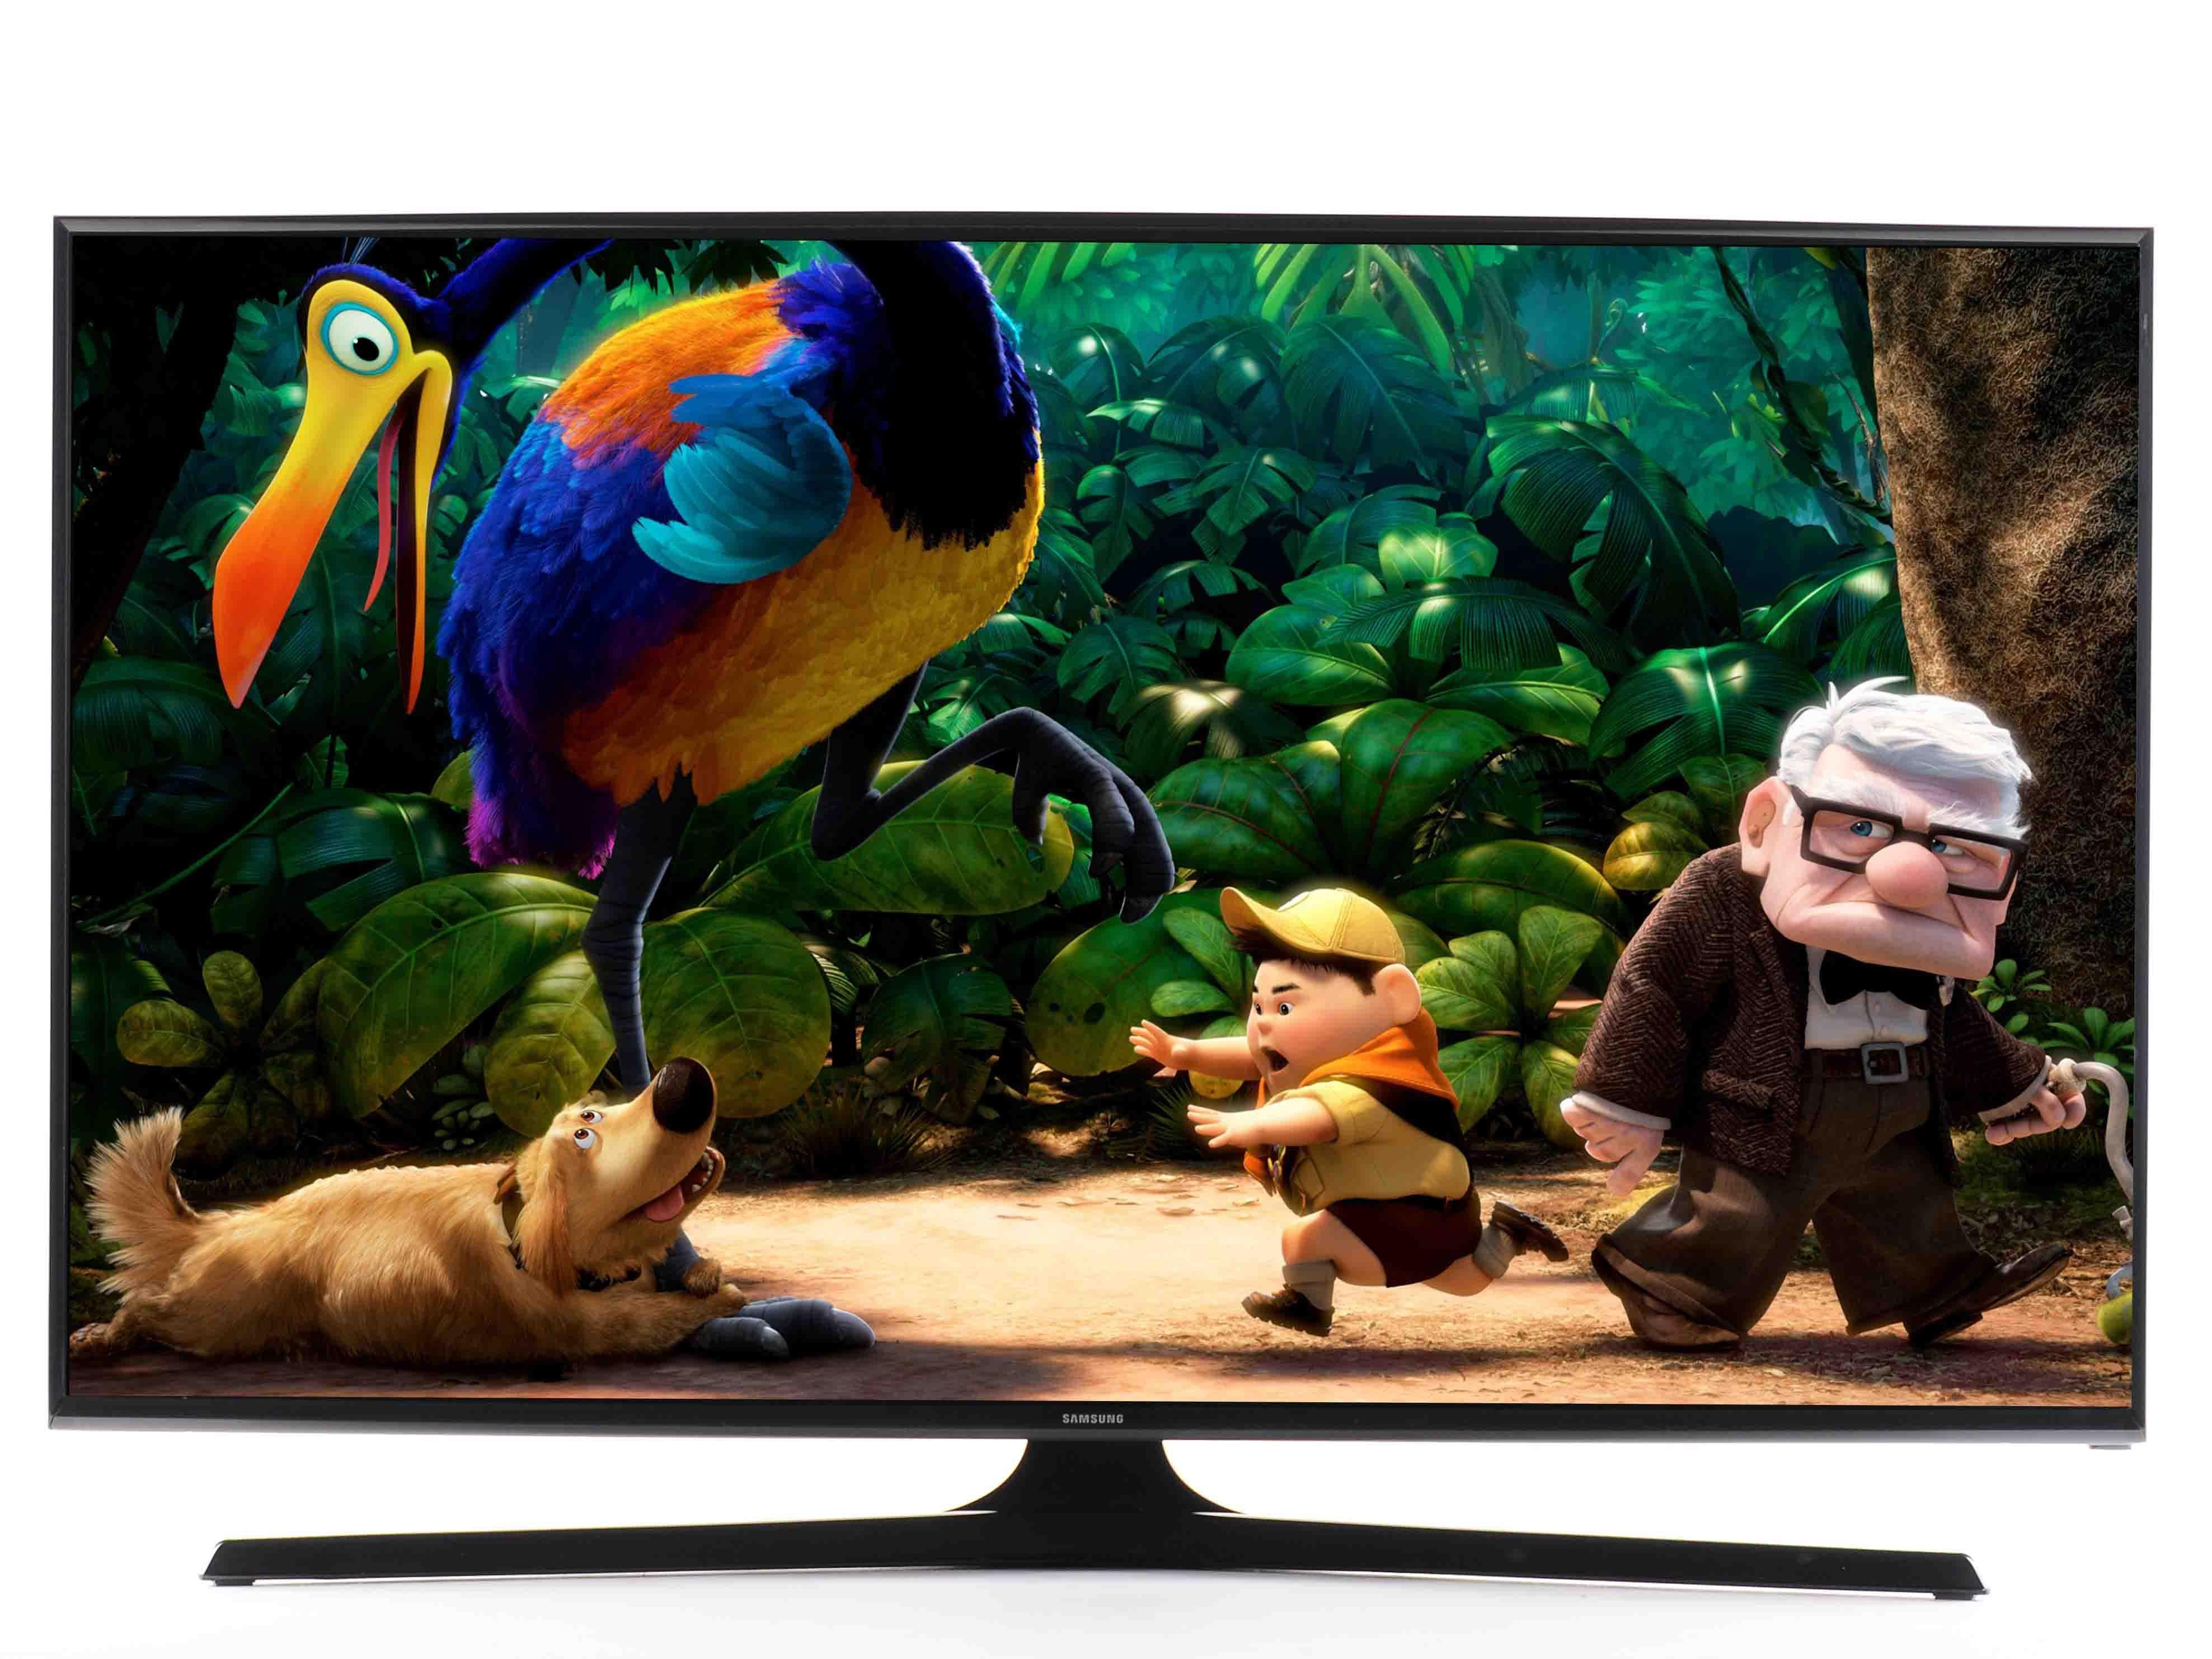 10 Best 24-Inch LED TVs In India 2019 - Best Product Review